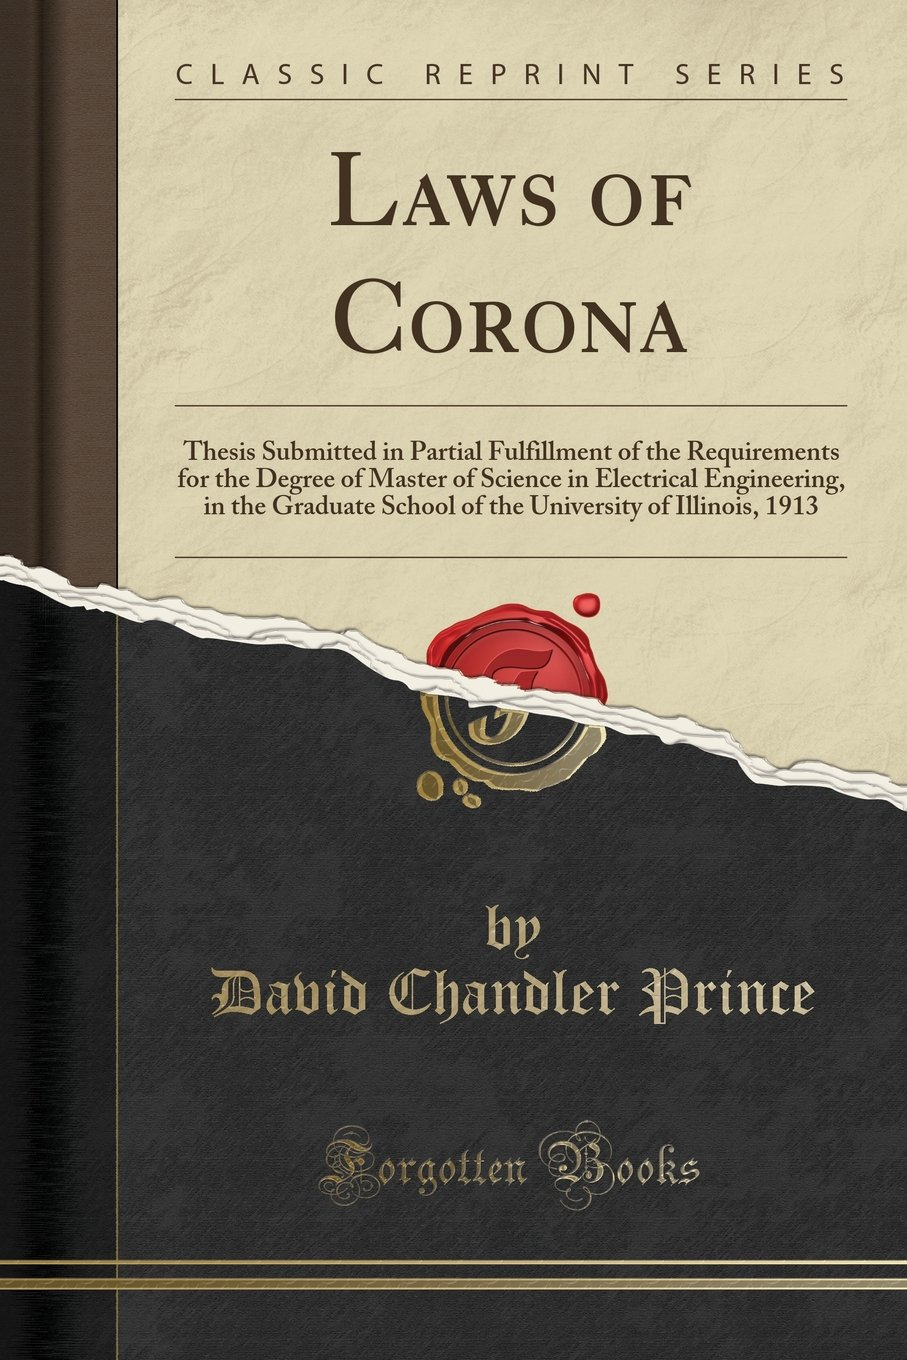 Laws of Corona: Thesis Submitted in Partial Fulfillment of the Requirements for the Degree of Master of Science in Electrical Engineering, in the ... of Illinois, 1913 (Classic Reprint) ebook